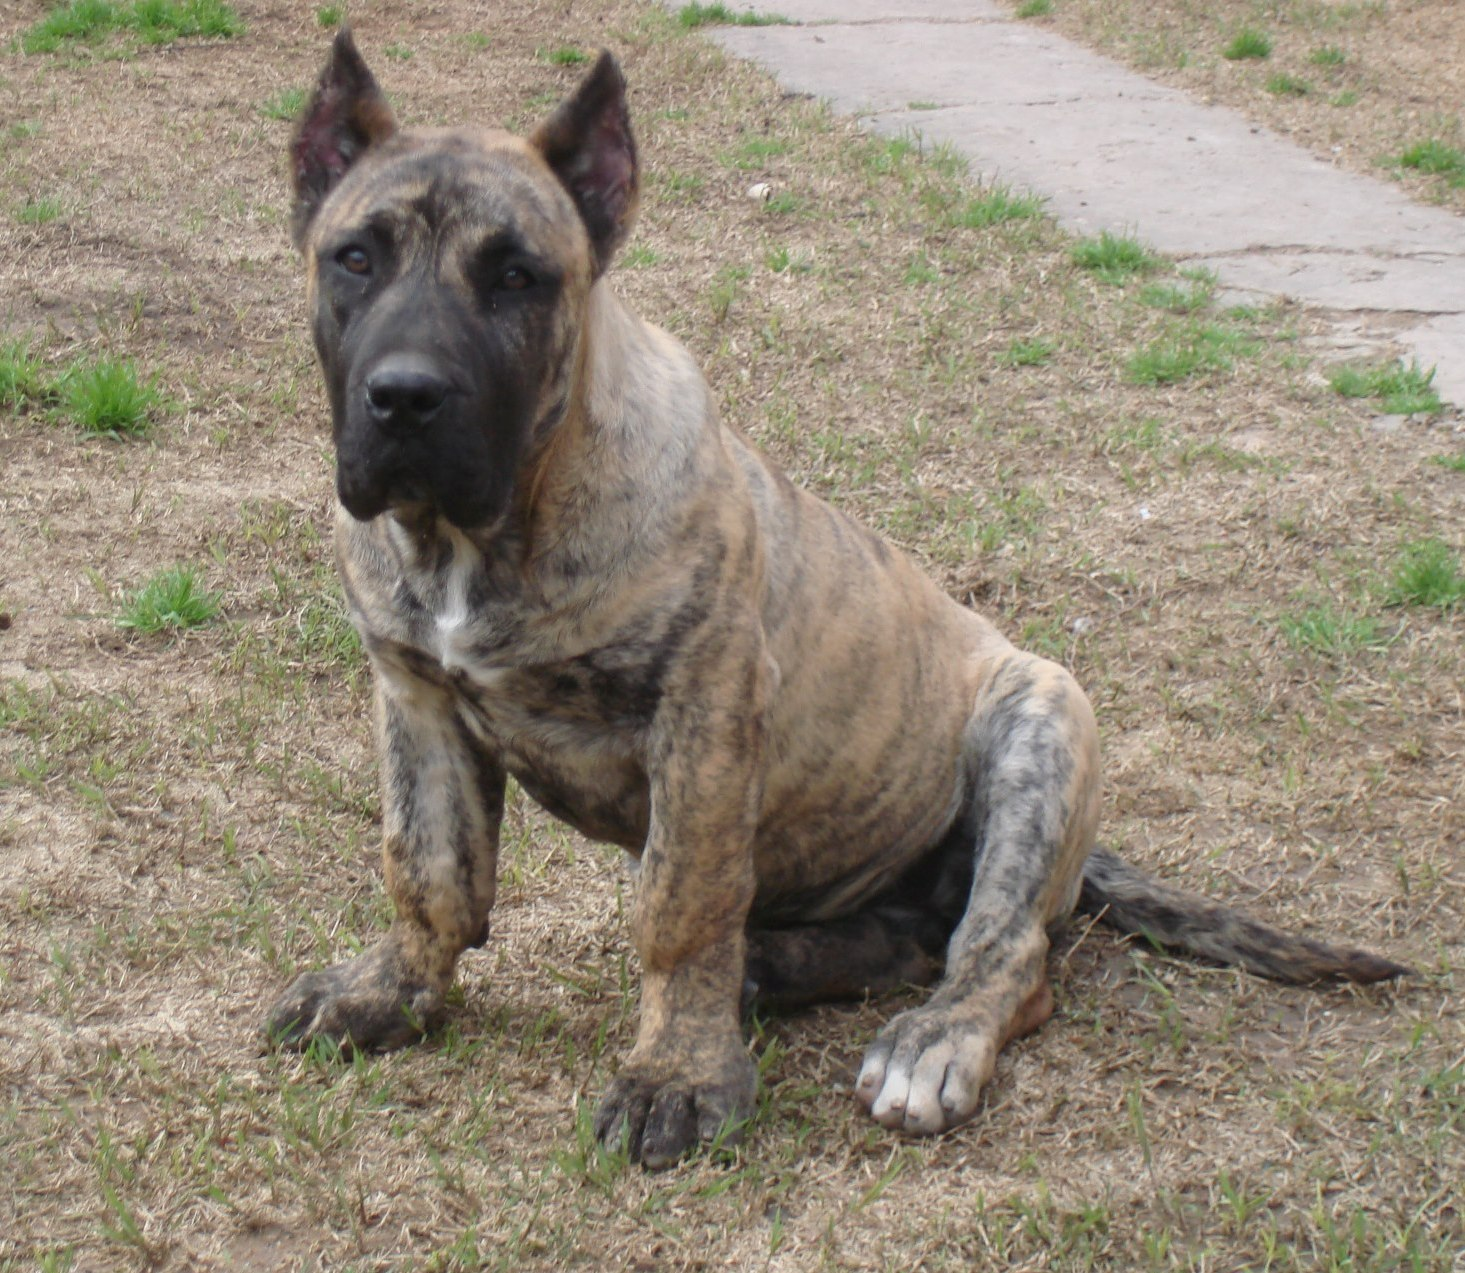 Beautiful Perro de Presa Canario dog wallpaper